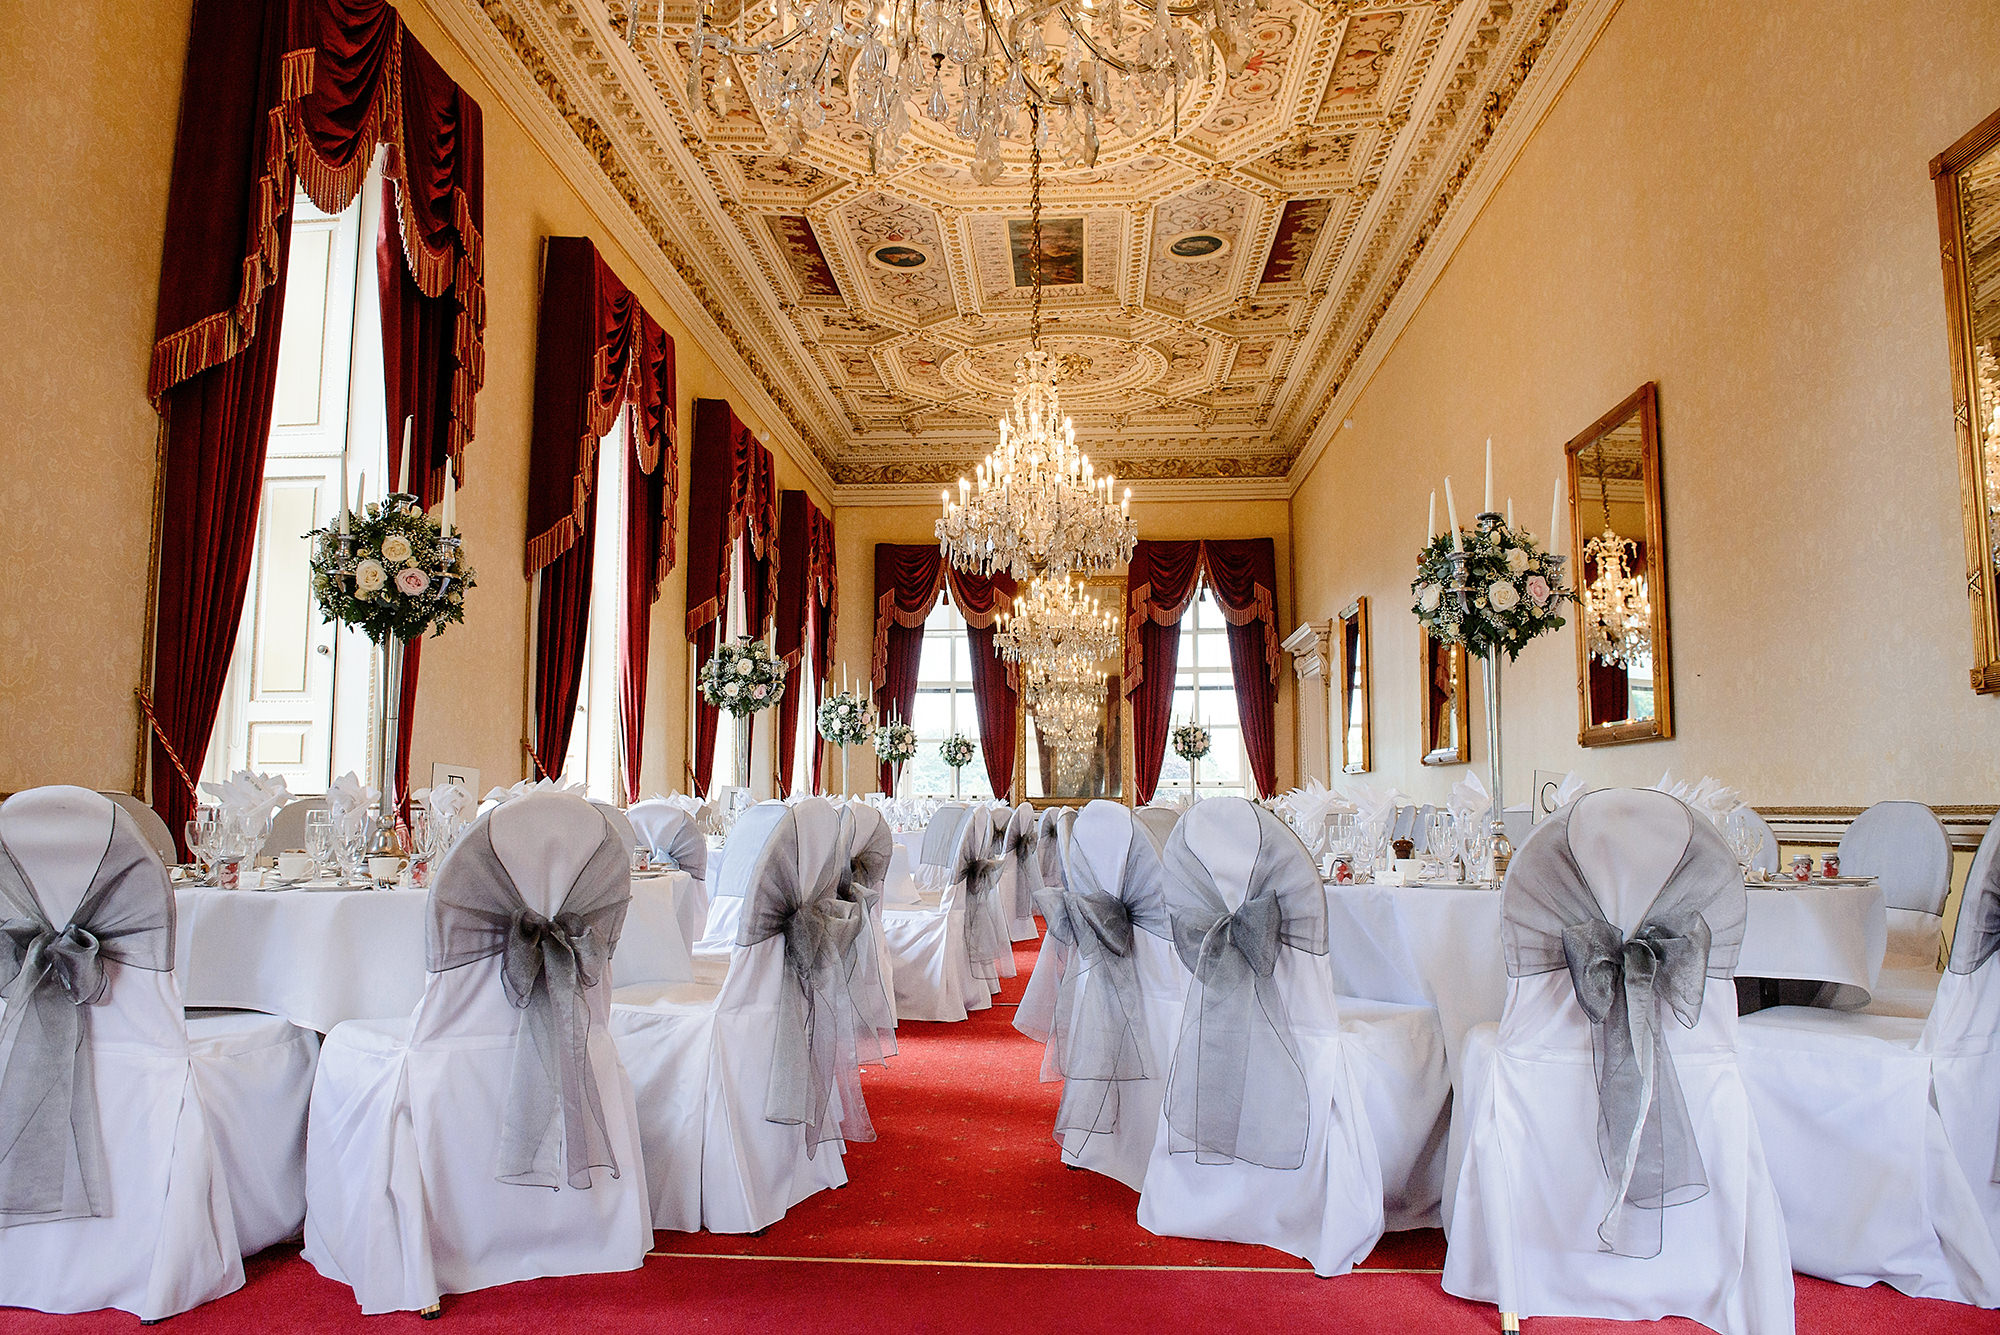 The dining room at Moor Park